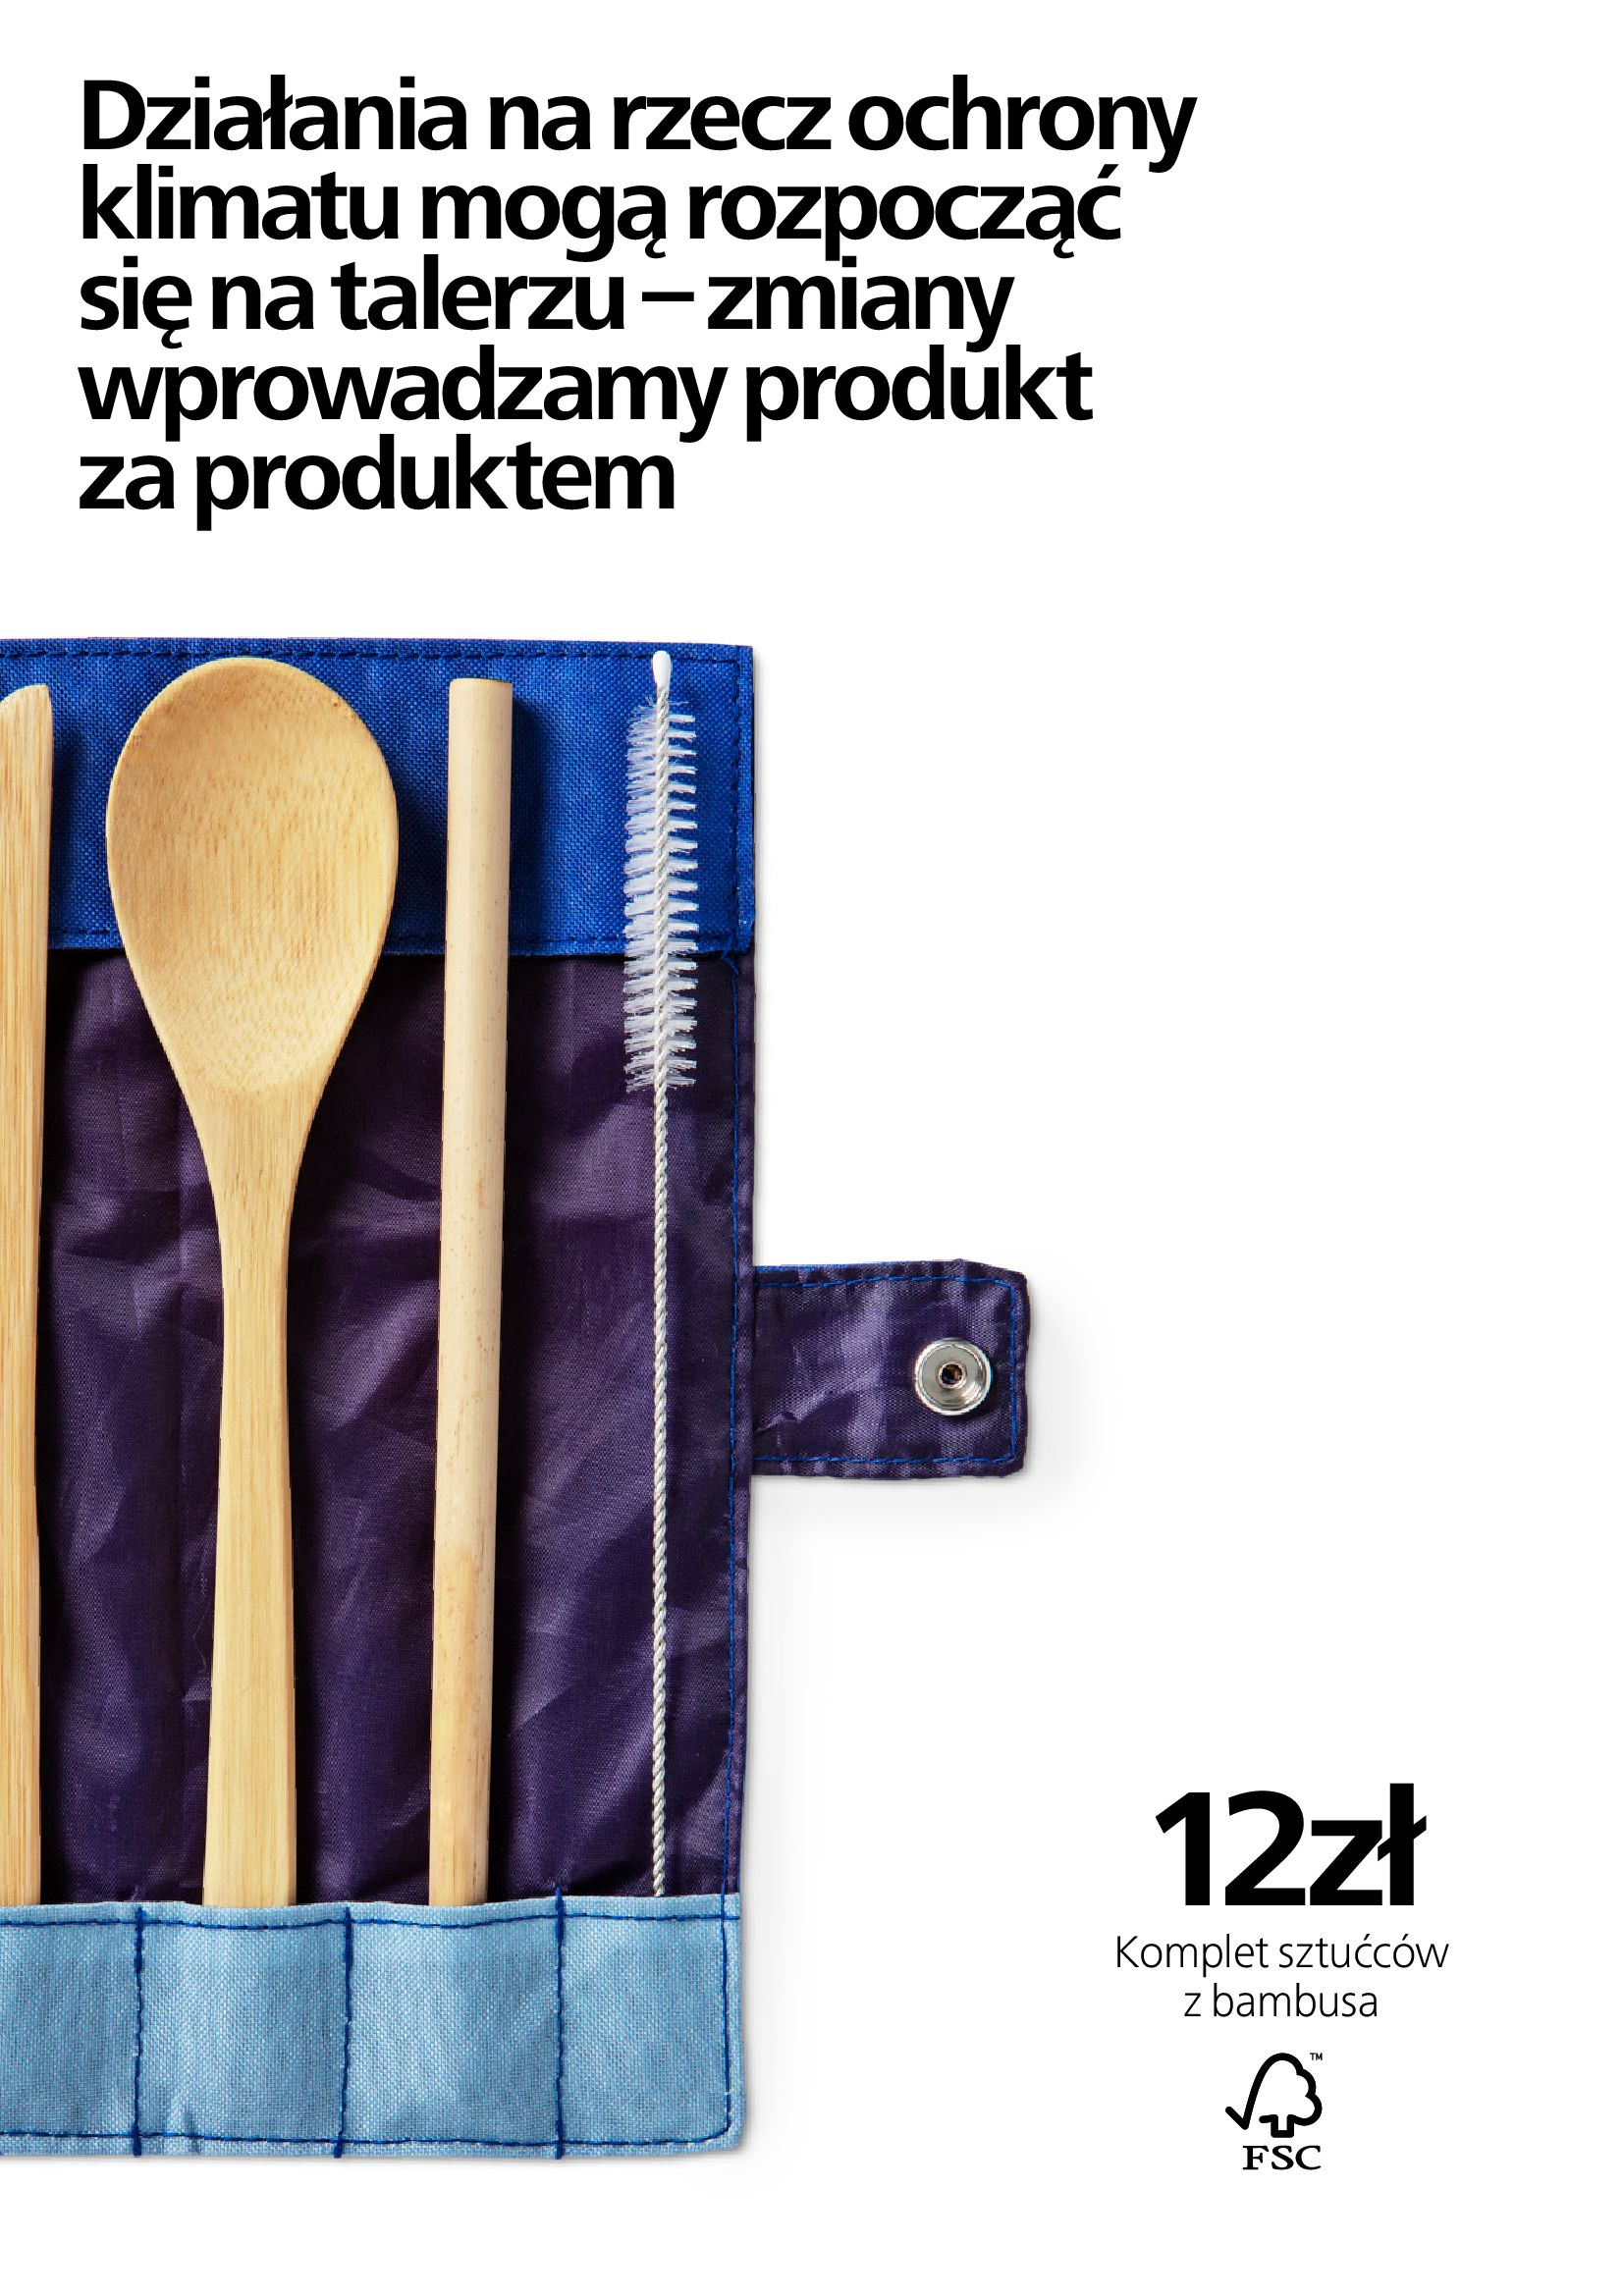 Gazetka Flying tiger: Katalog wiosna 2021-04-07 page-21